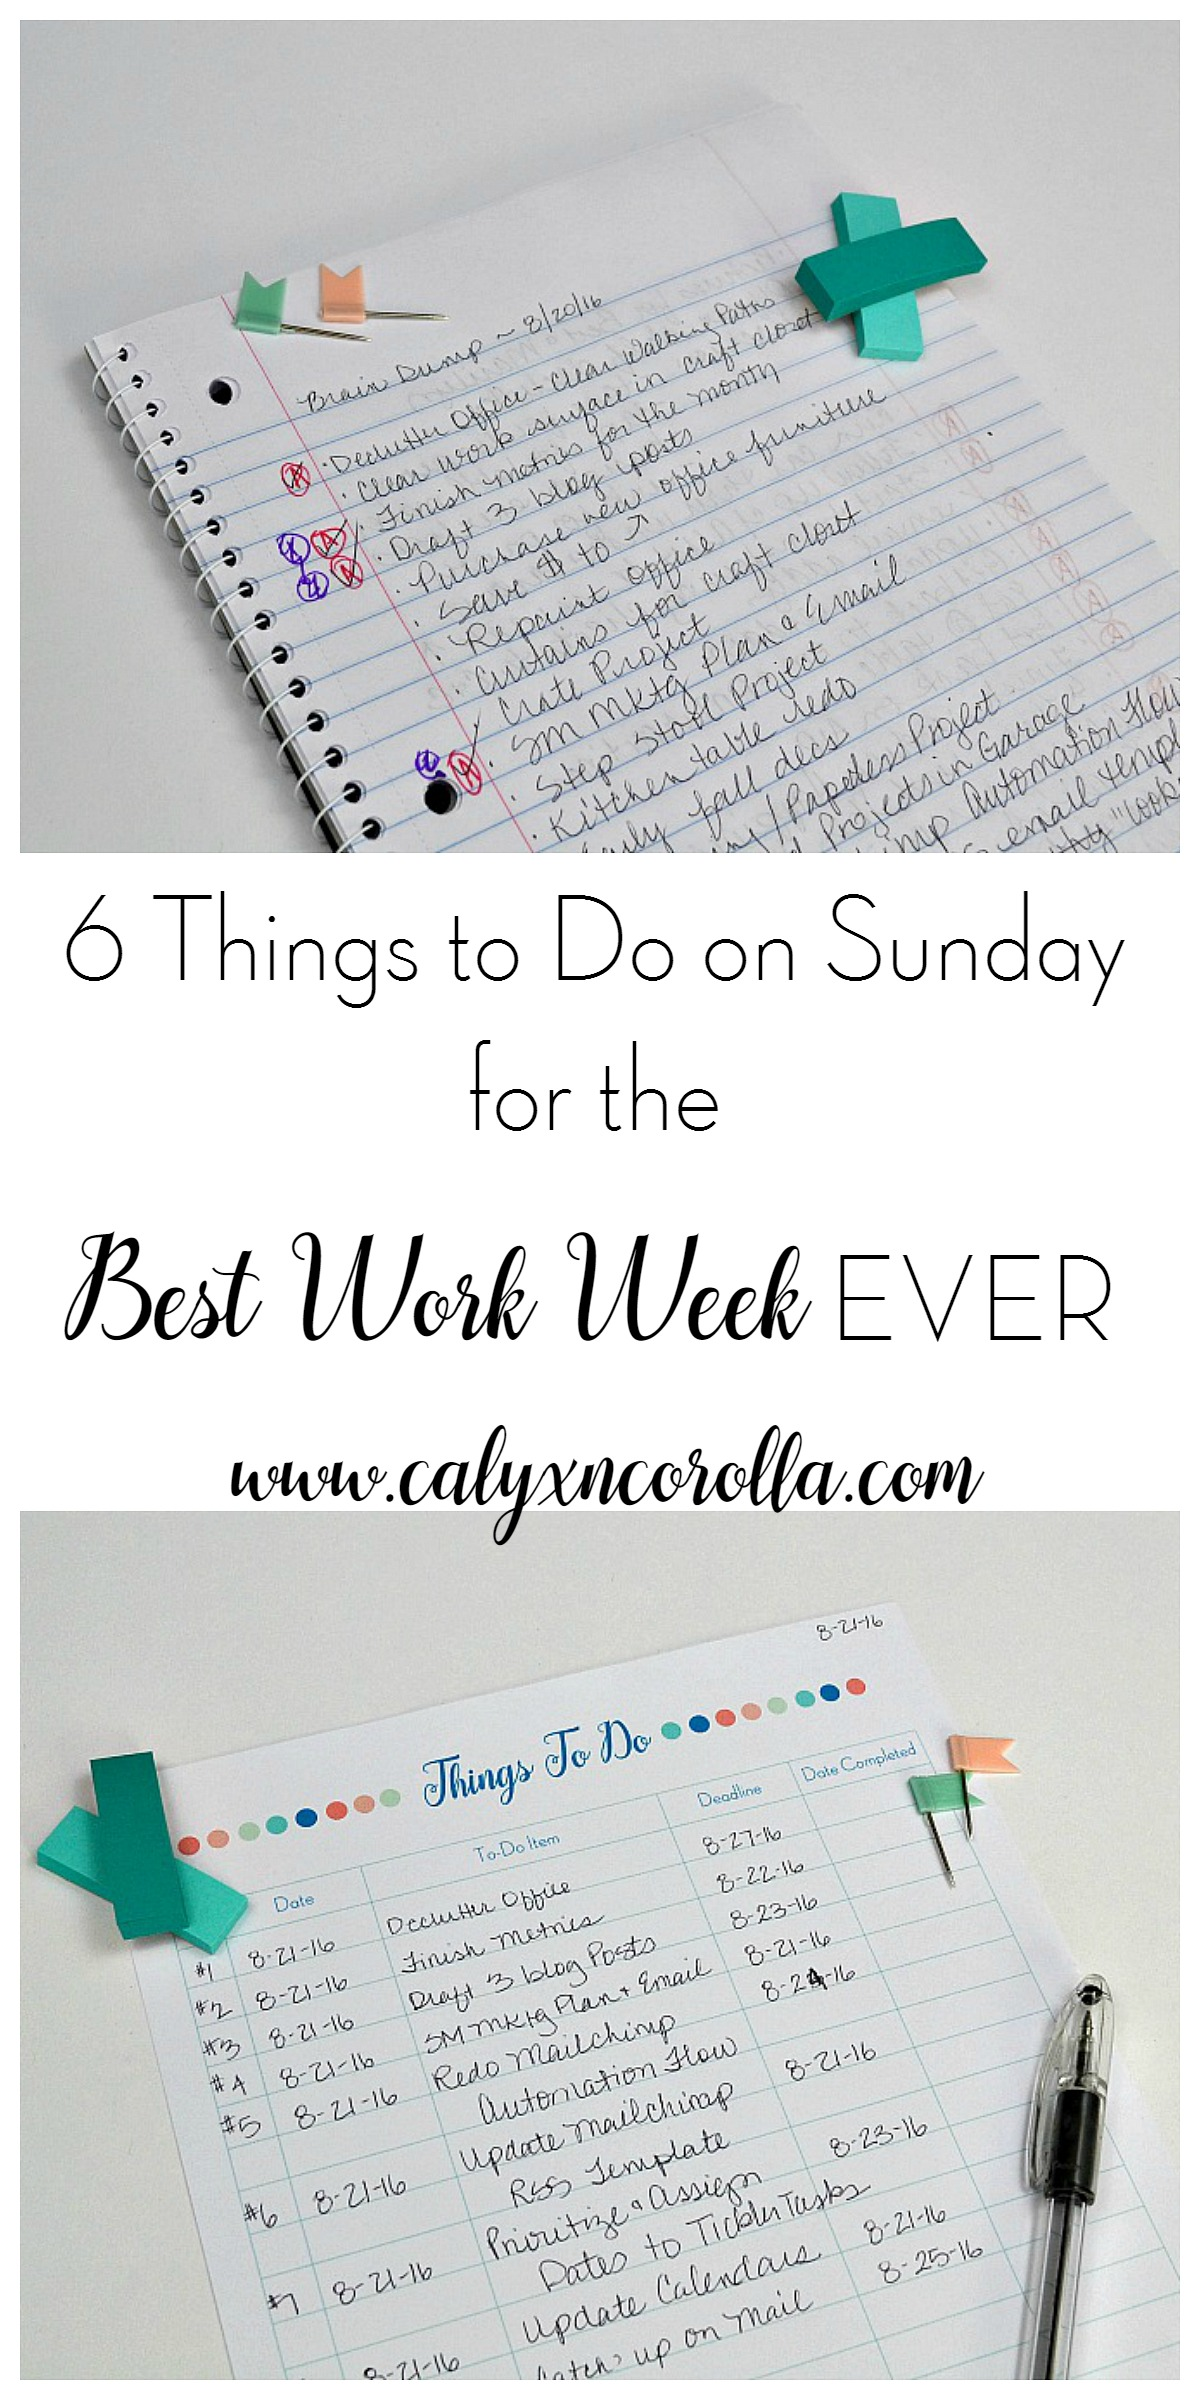 There's nothing worse than starting your week with chaos and frustration. And typically, when our week starts like that, it continues in that same vein until the weekend arrives. But there are a few things you can do to avoid a week of chaos, disorganization, and frustration. Here are 6 things to do on Sunday for the best work week EVER! | Calyx and Corolla